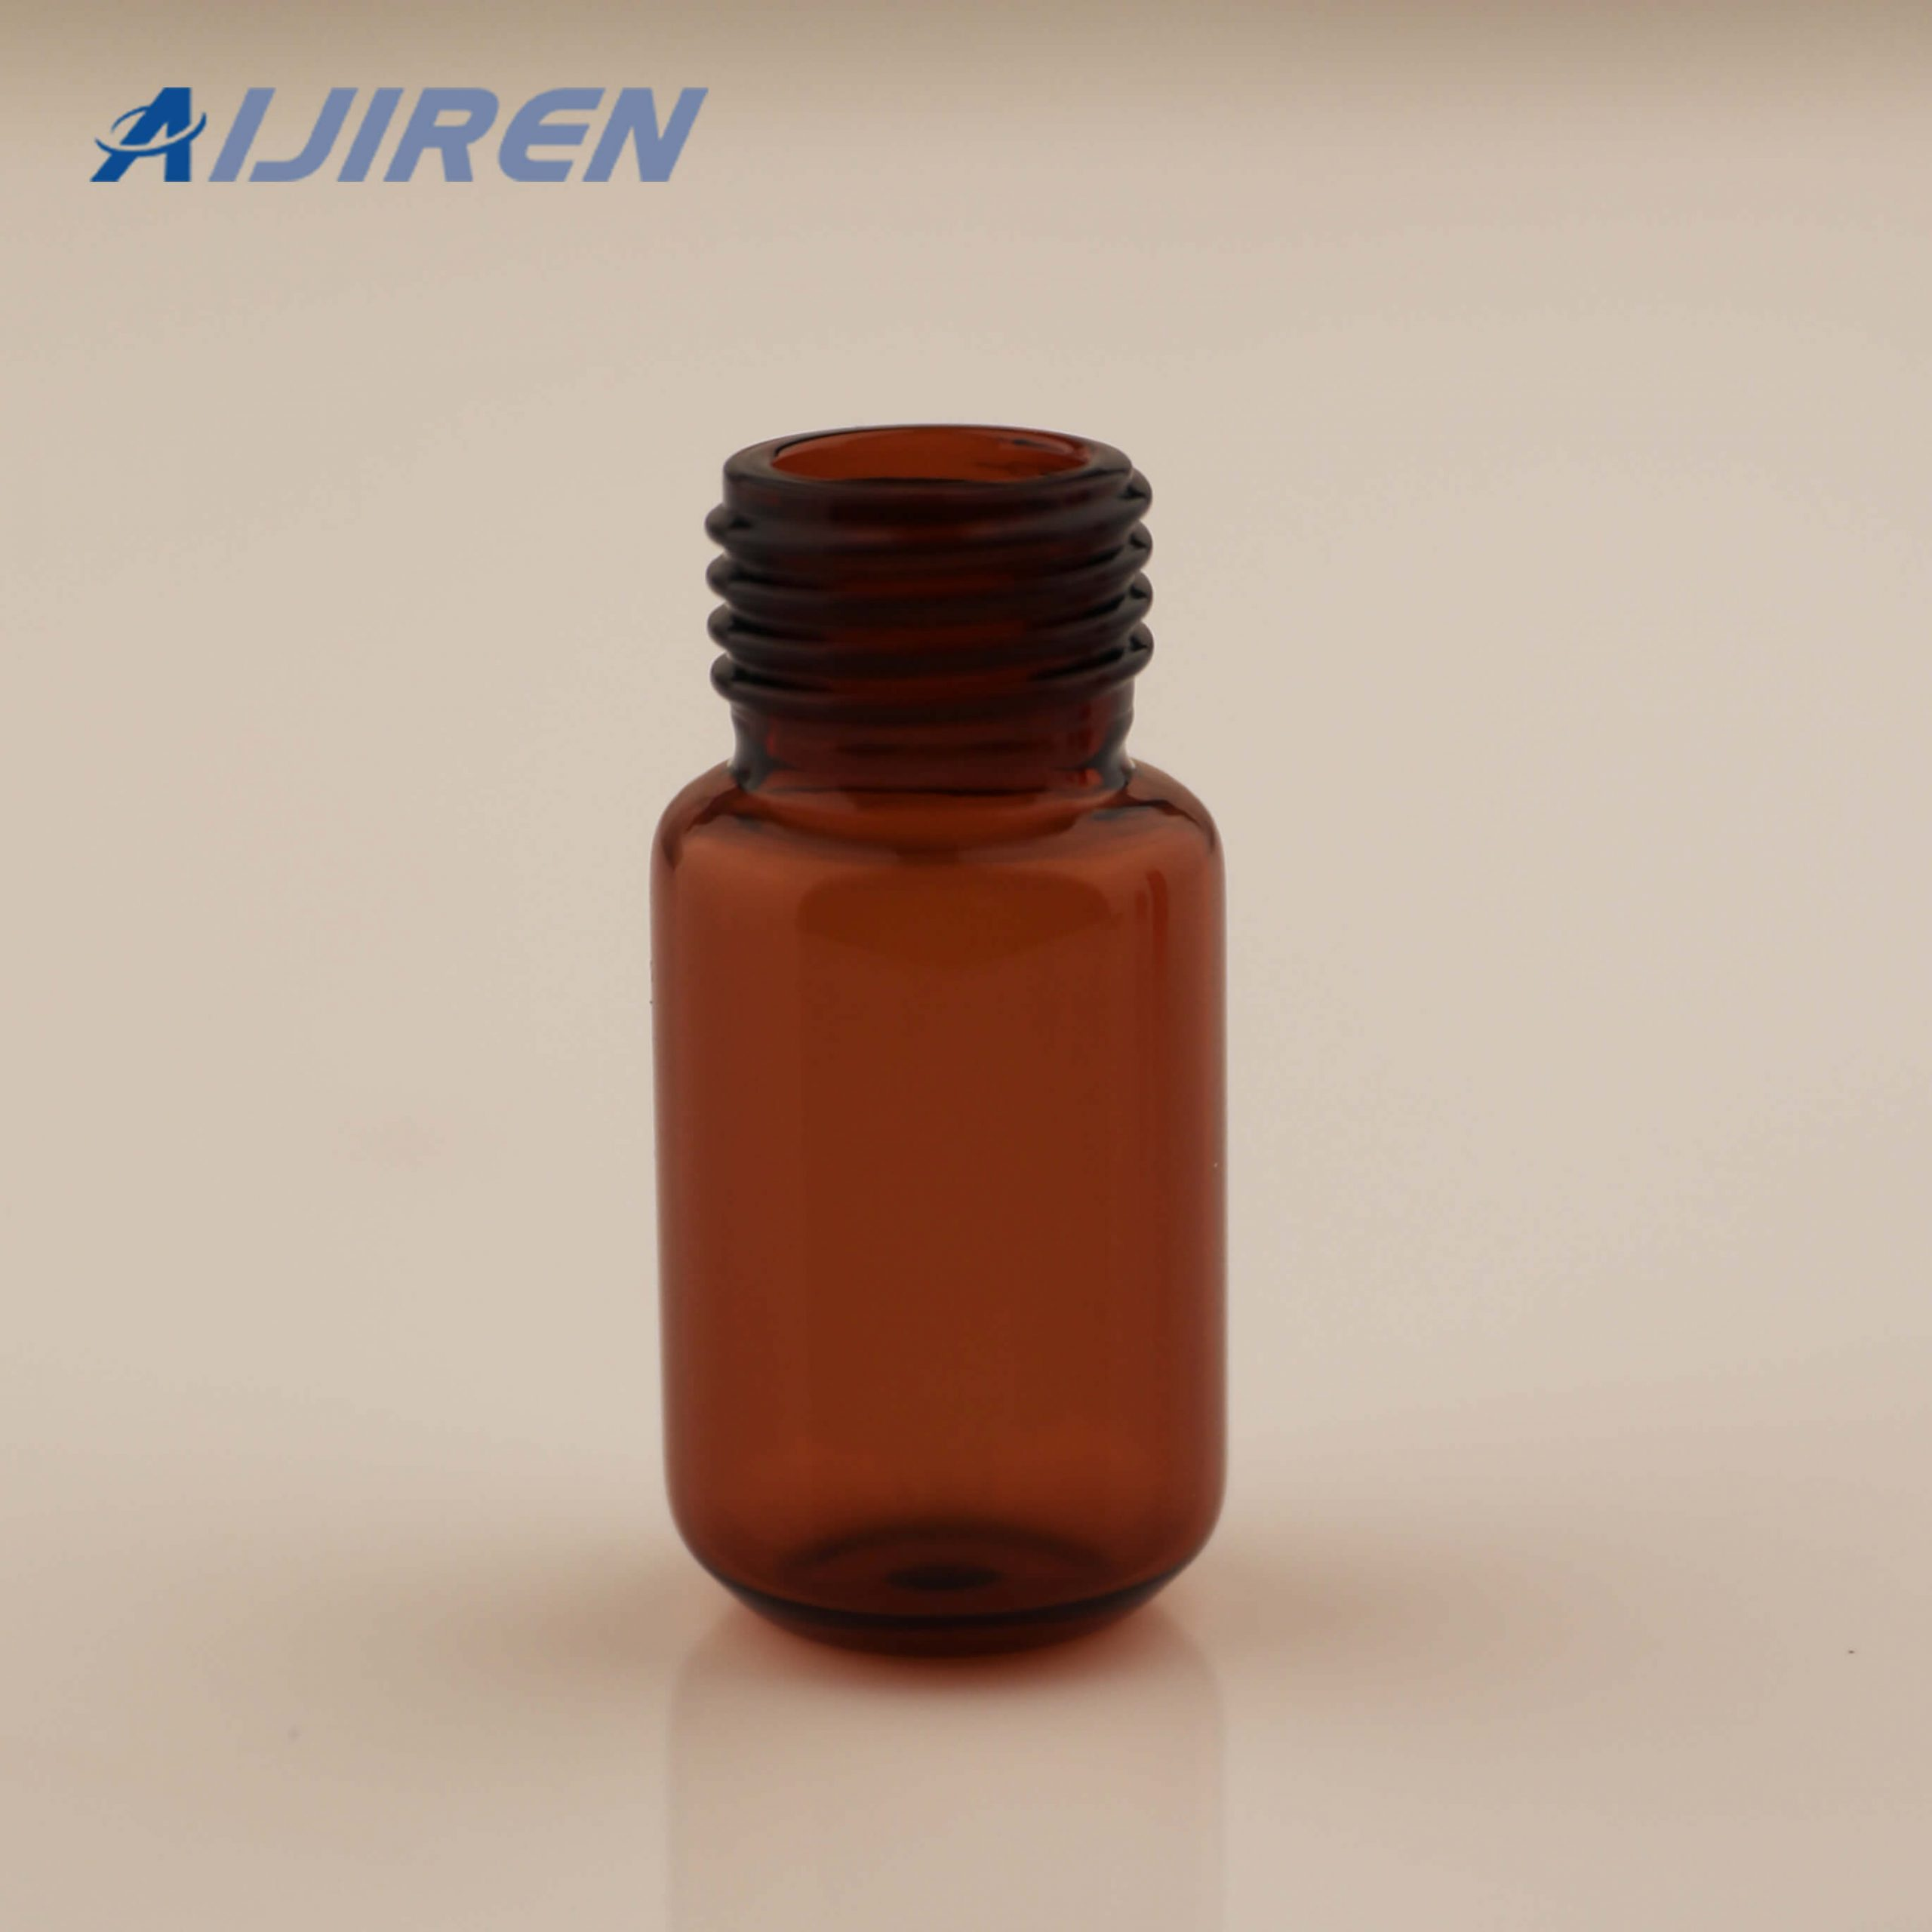 20ml headspace vial10ml Amber Glass Headspace Vials for Agilent